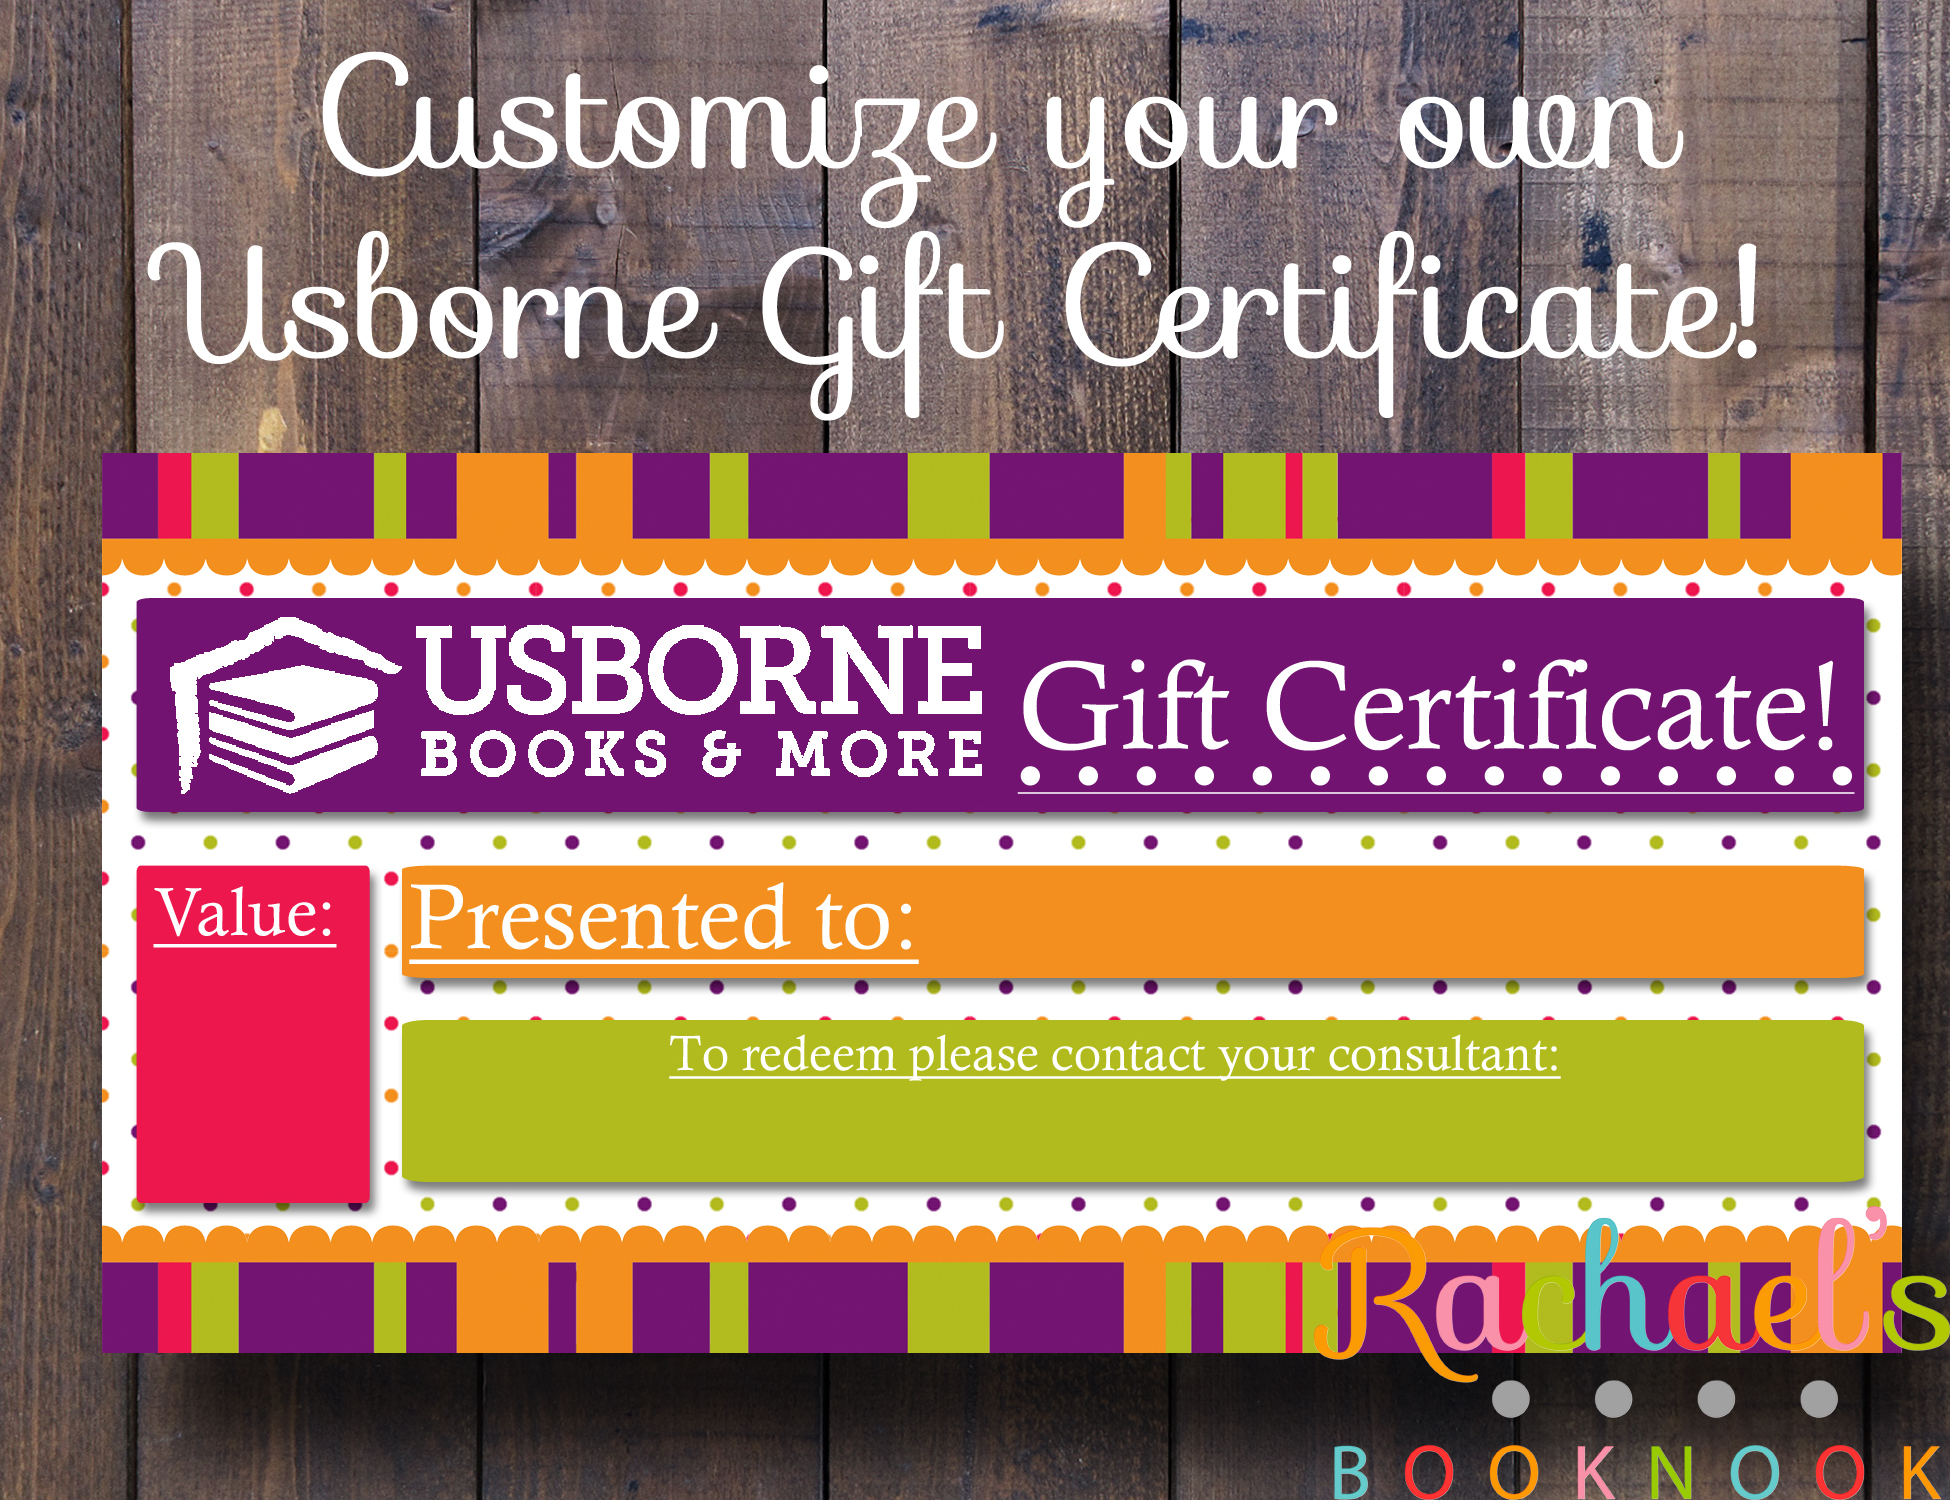 business helps for usborne consultants archives